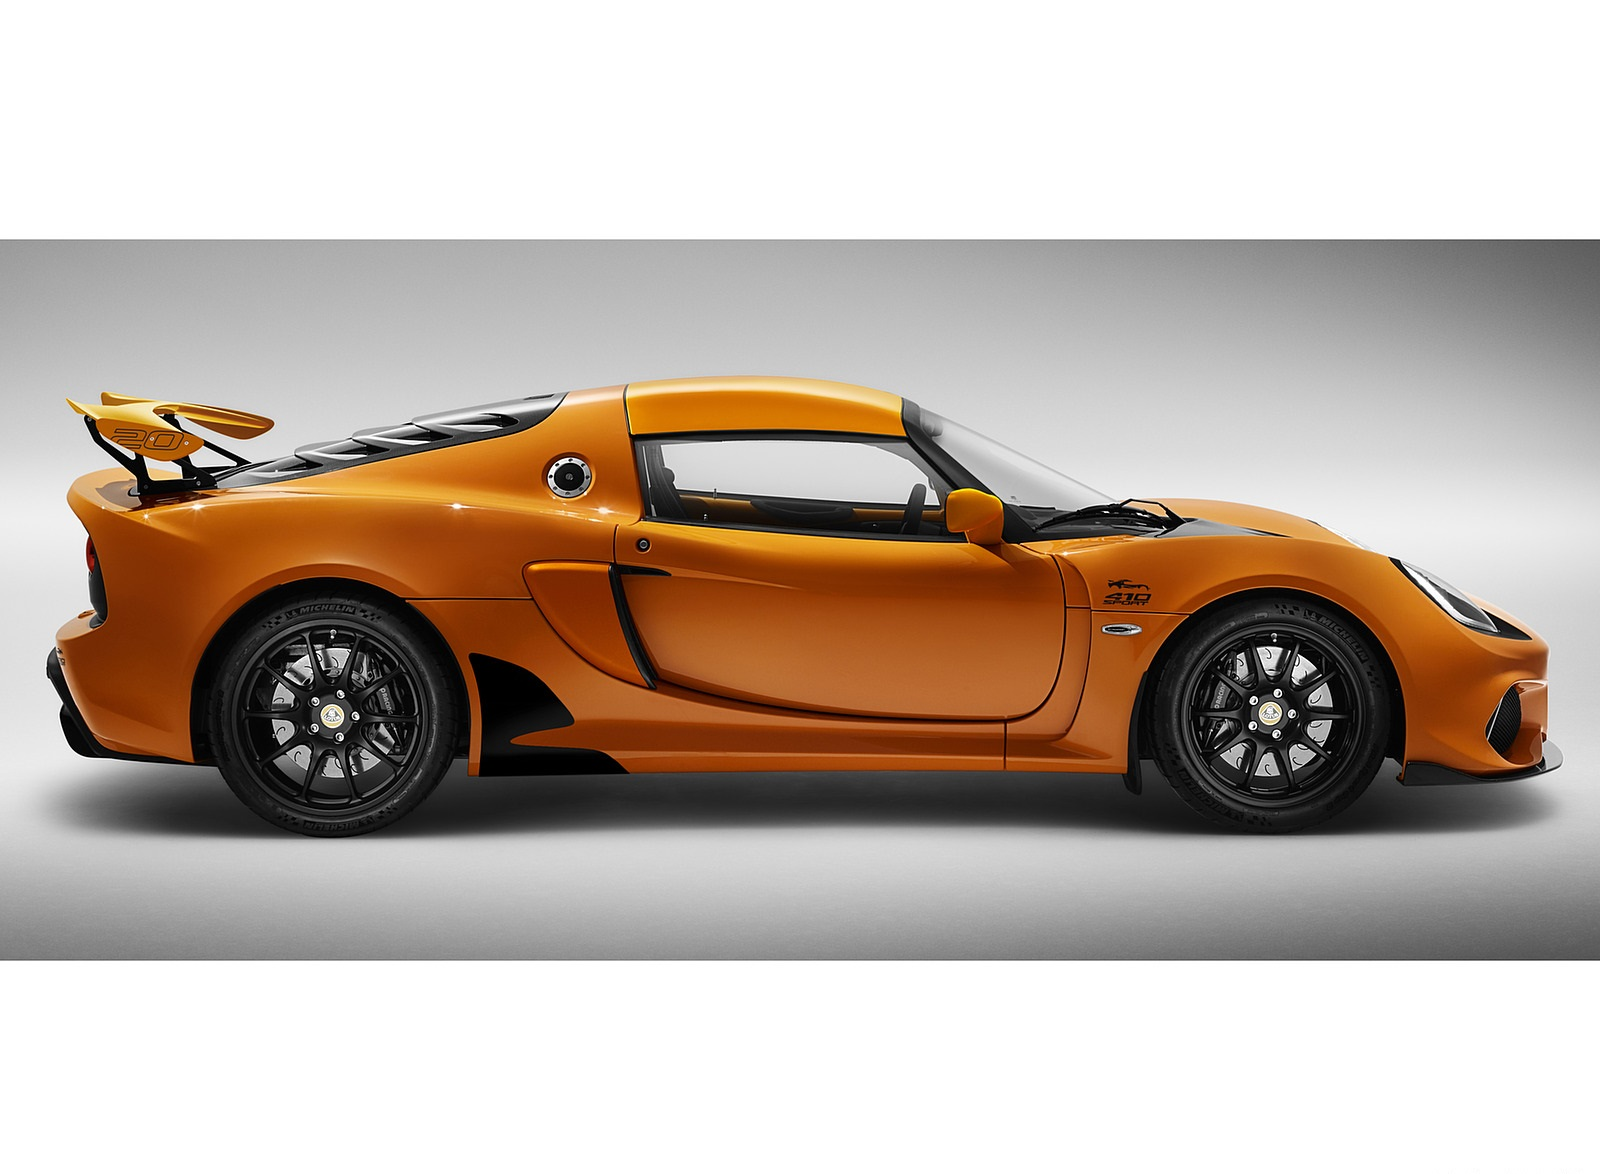 2020 Lotus Exige Sport 410 20th Anniversary (Color: Chrome Orange) Side Wallpapers (10)